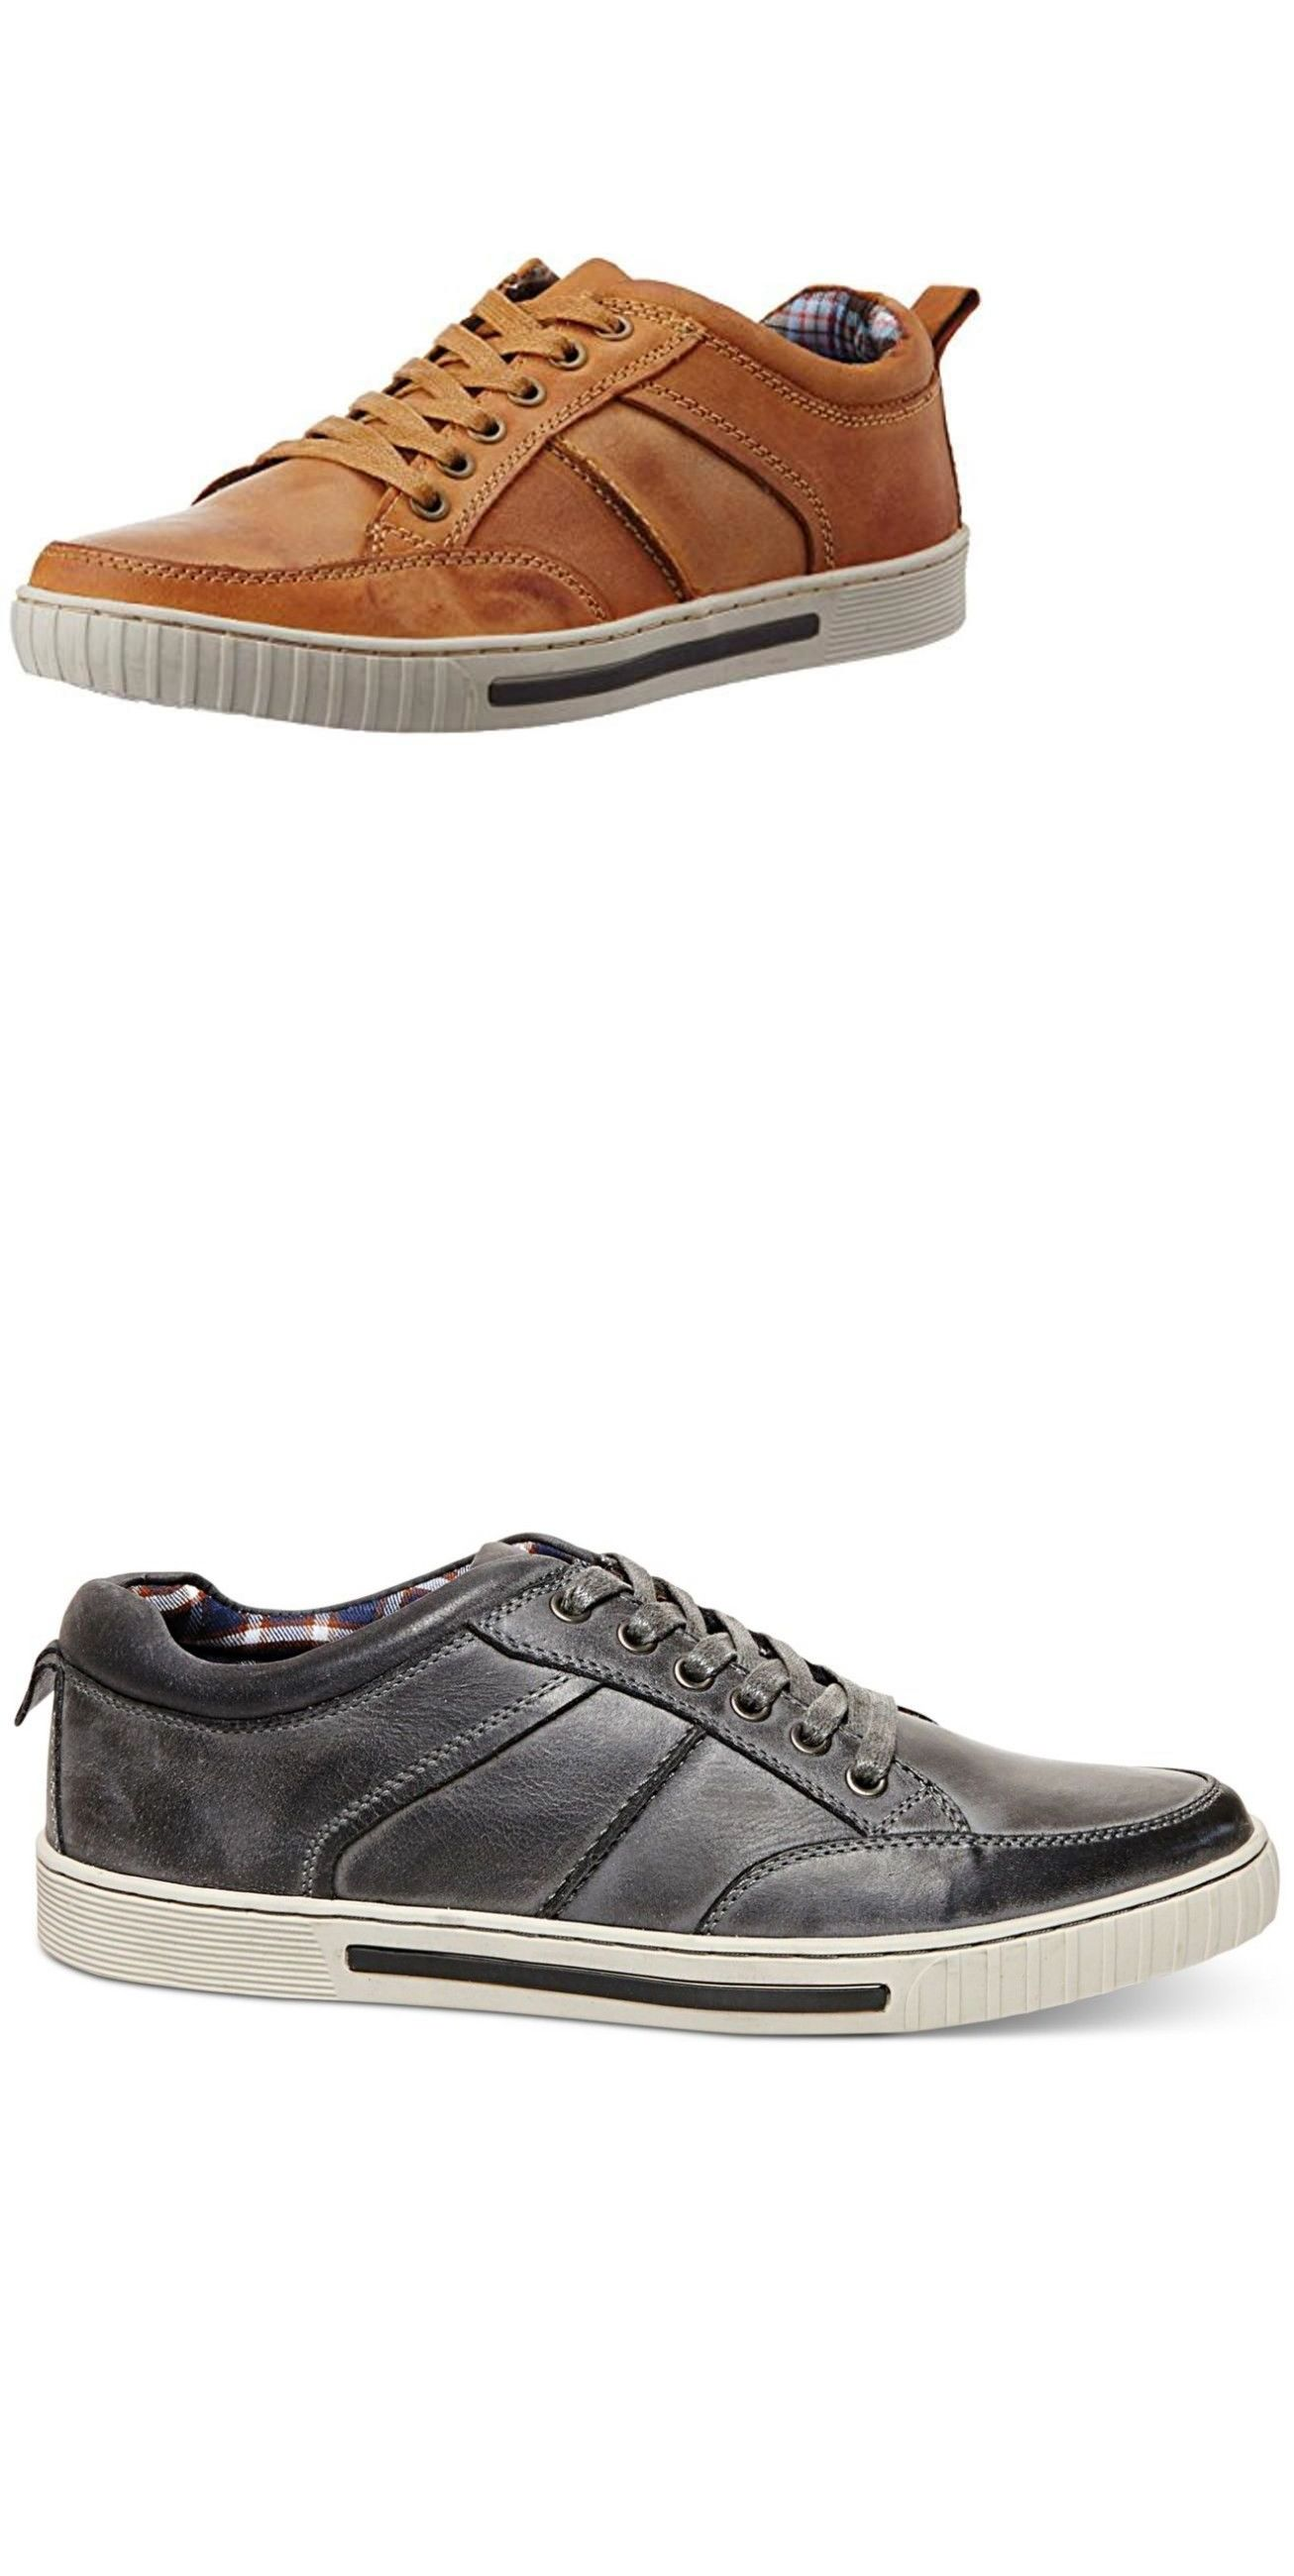 d1319d977c3 Casual Shoes 24087  Steve Madden Mens Pipeur Fashion Sneakers Choose Your  Style Choose Your Size -  BUY IT NOW ONLY   25.99 on  eBay  casual  shoes   steve ...